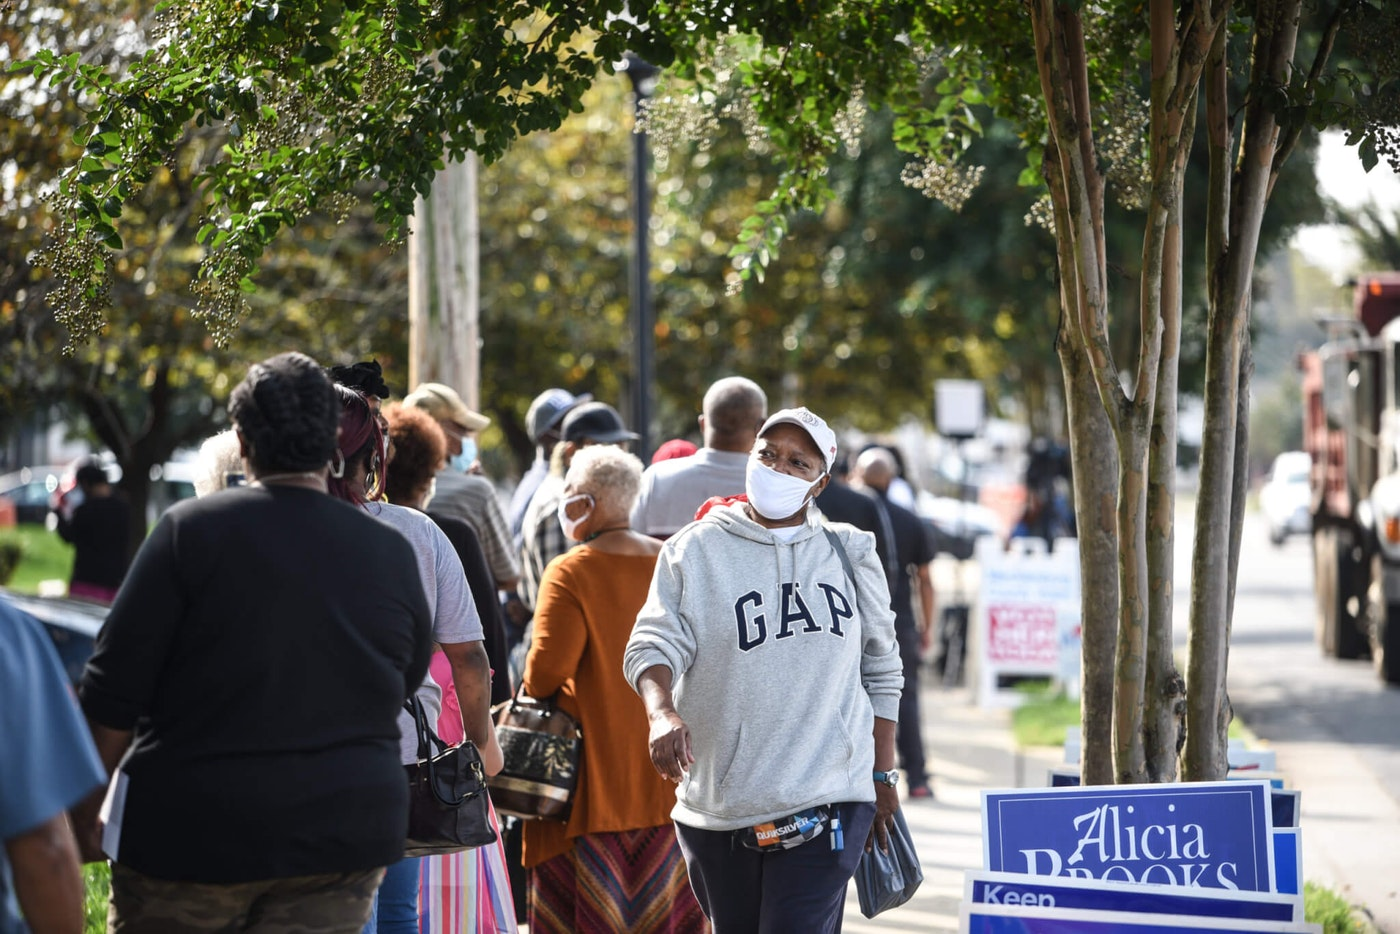 Voters stand in line waiting to cast ballots in  the 2020 election at a Charlotte early voting site. (Photo for Cardinal & Pine by Alvin Jacobs Jr.)